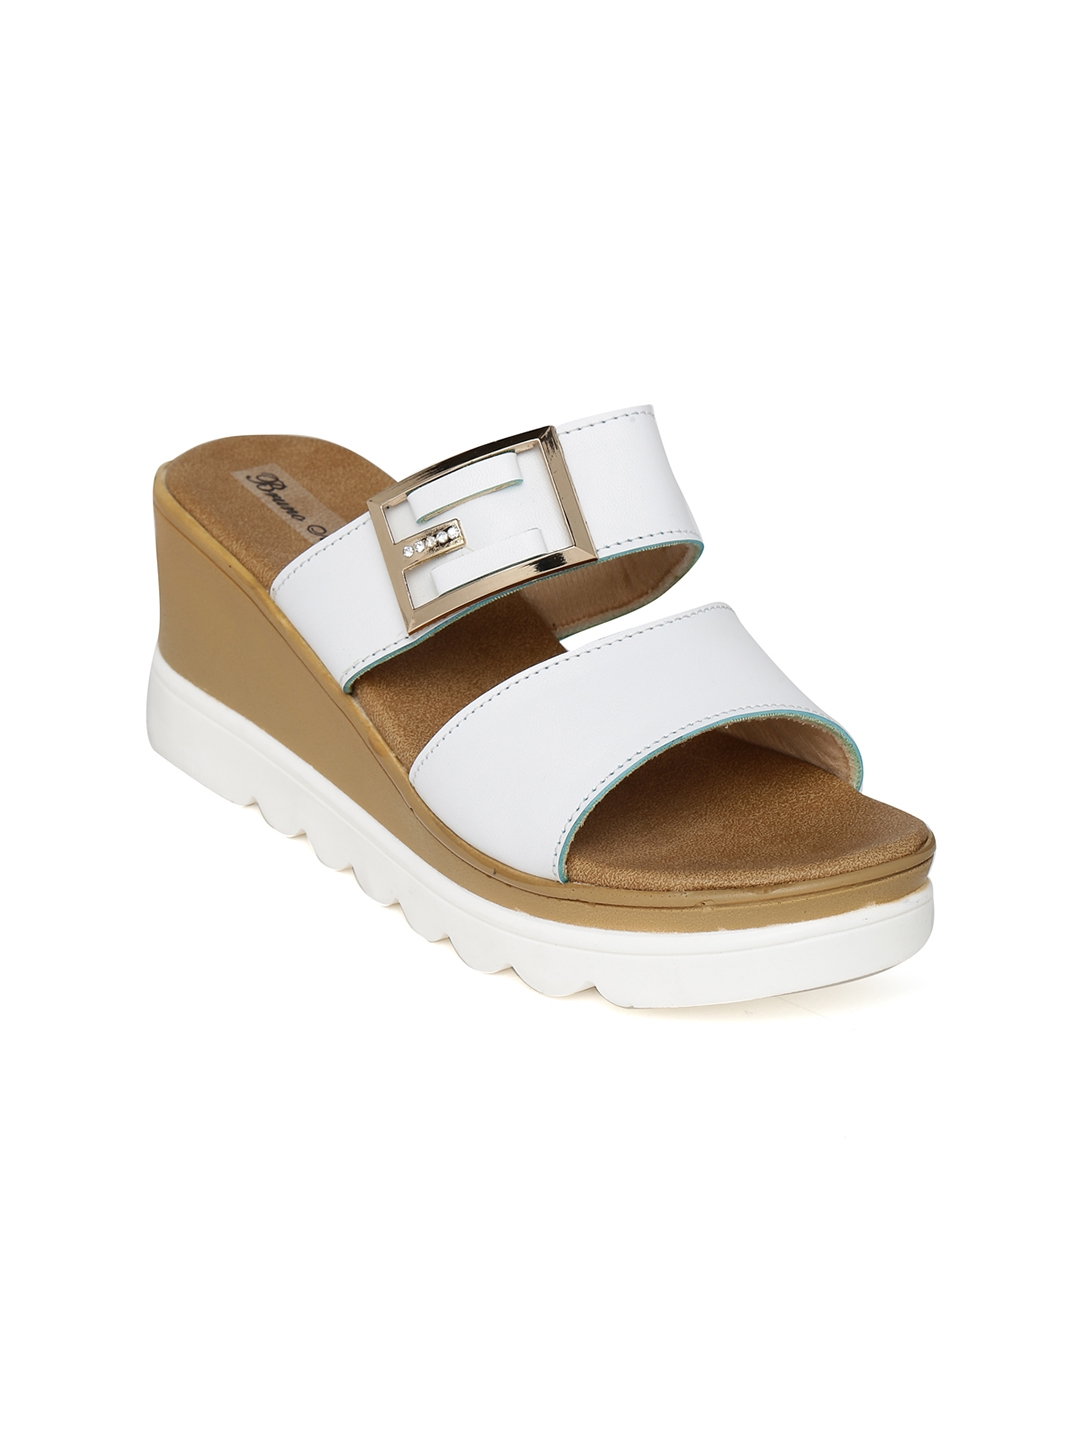 Bruno Manetti Women White Solid Wedges